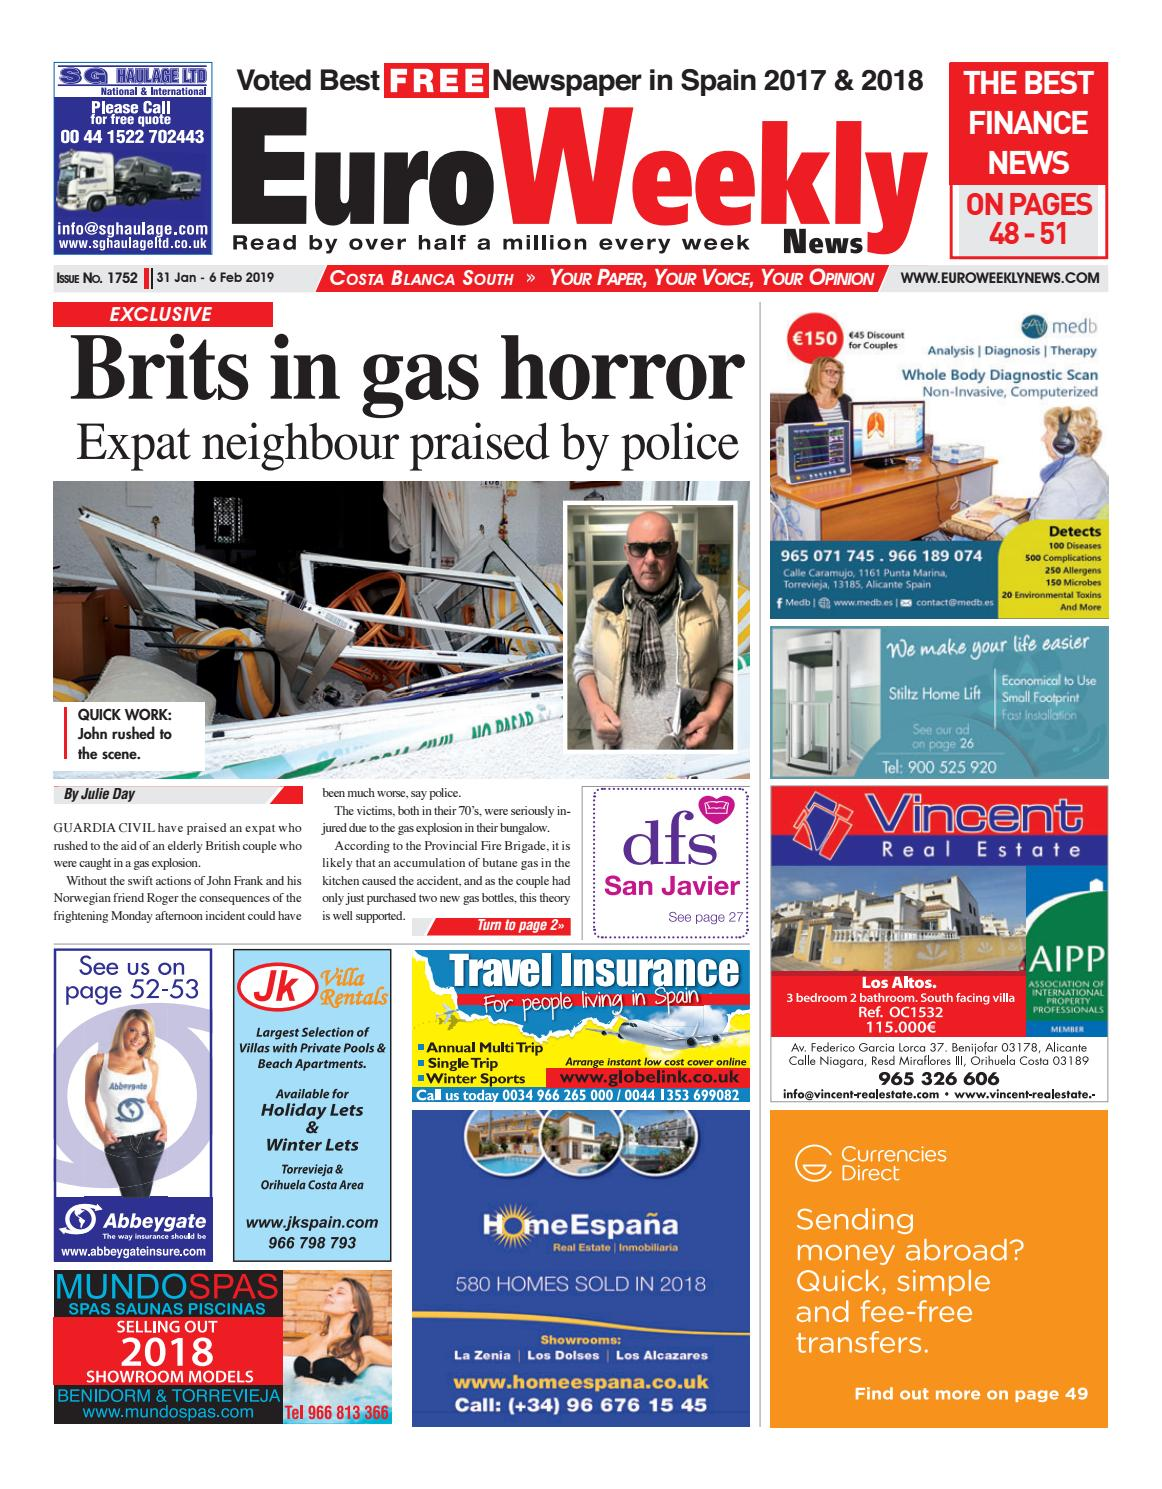 715b840872 Euro Weekly News - Costa Blanca South 31 Jan - 6 Feb 2019 Issue 1752 by  Euro Weekly News Media S.A. - issuu